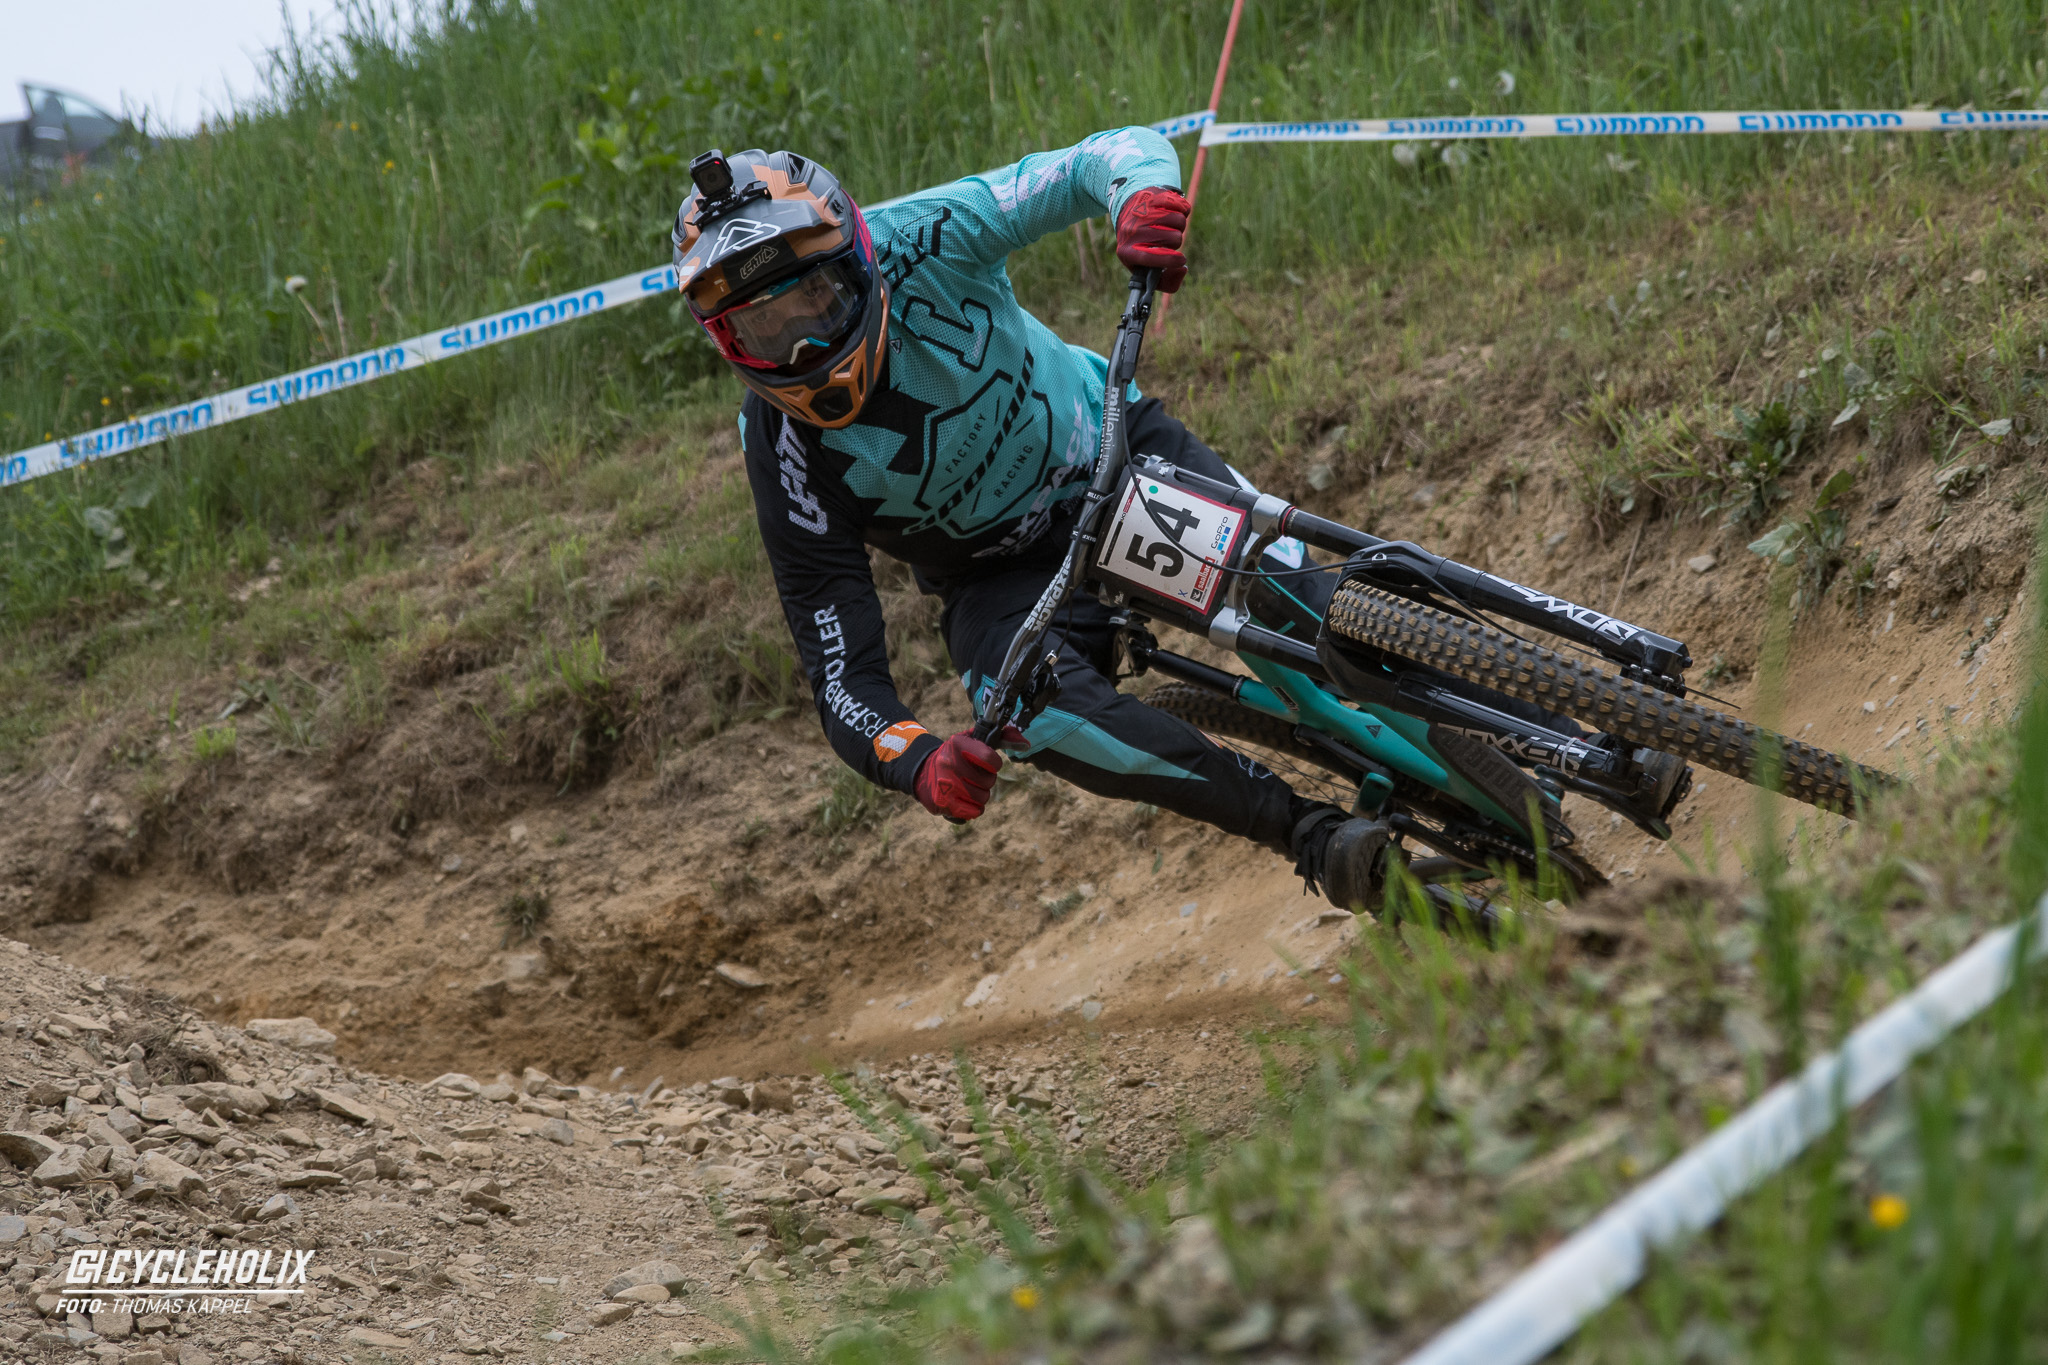 2019 Downhill Worldcup Leogang Finale Action QA 4